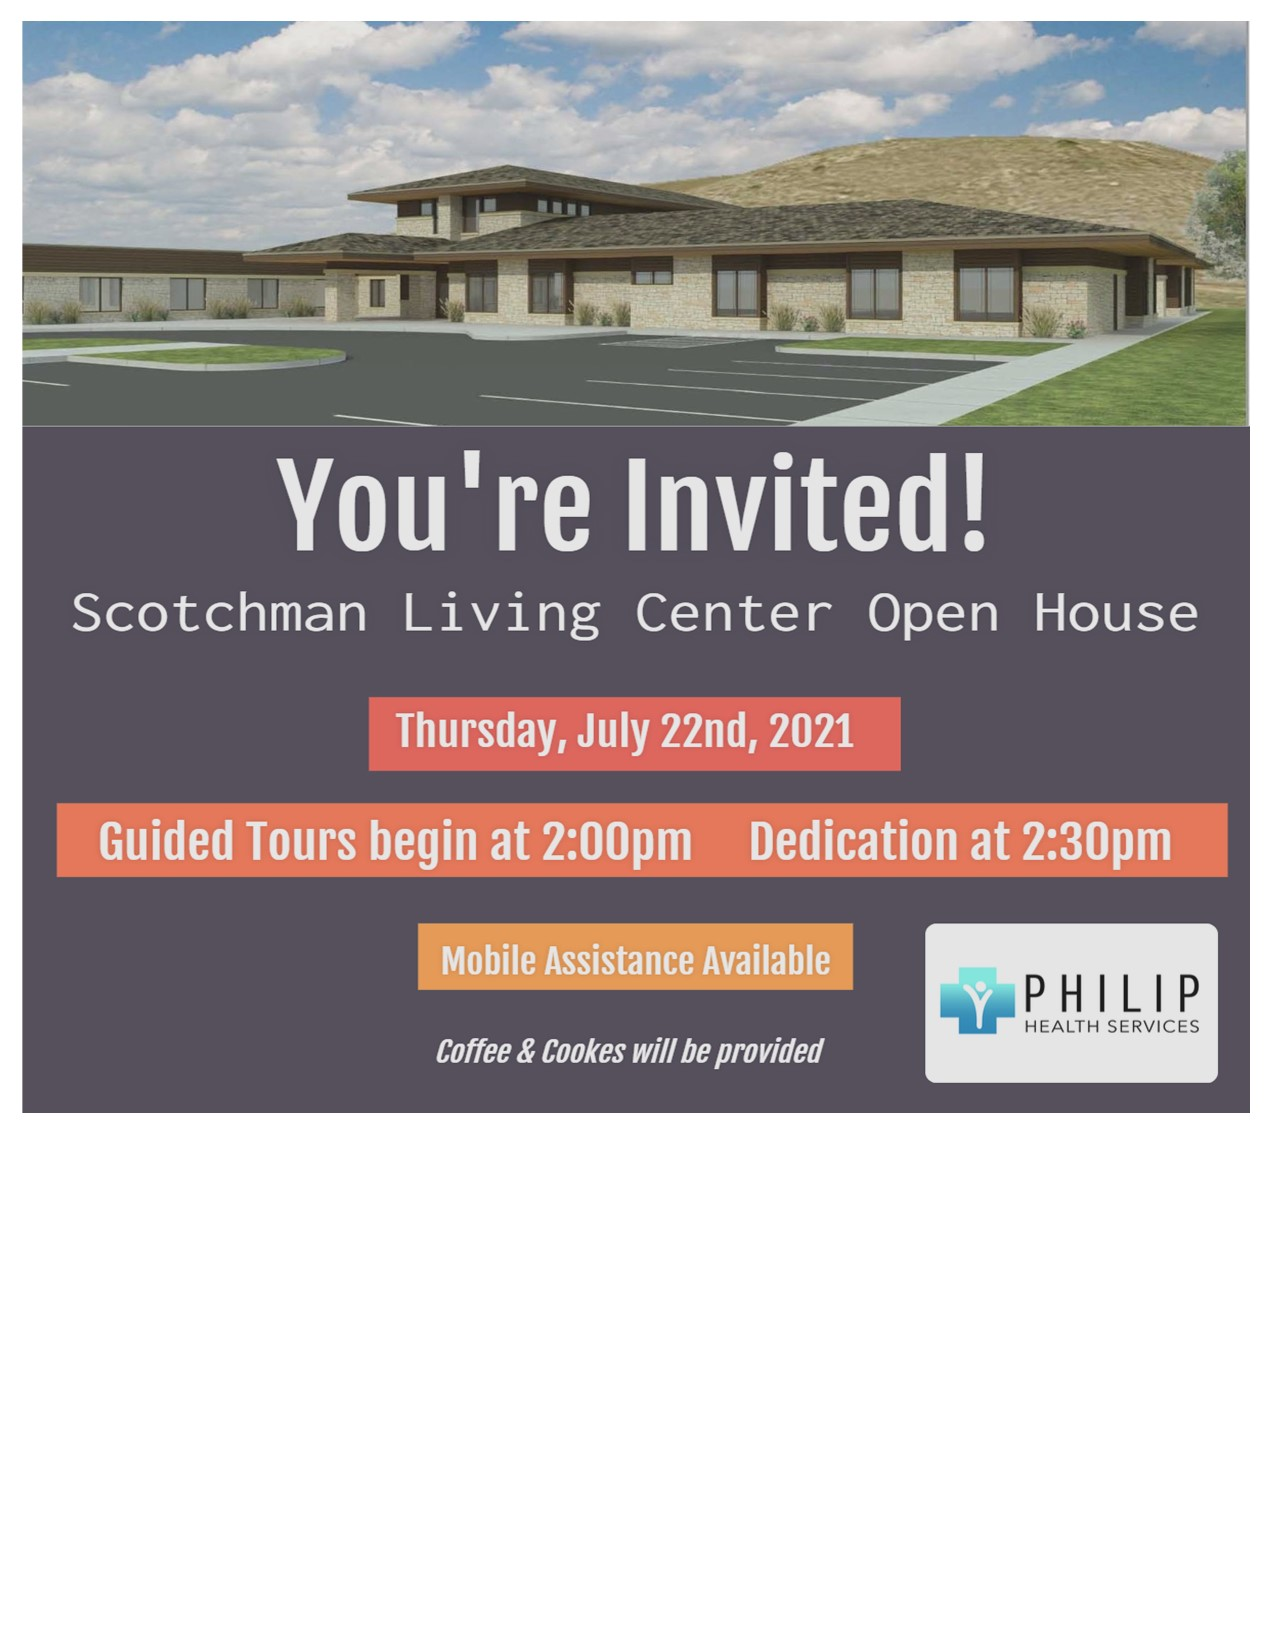 Philip Health Services To Have Open House & Dedication for Scotchman Living Center Addition